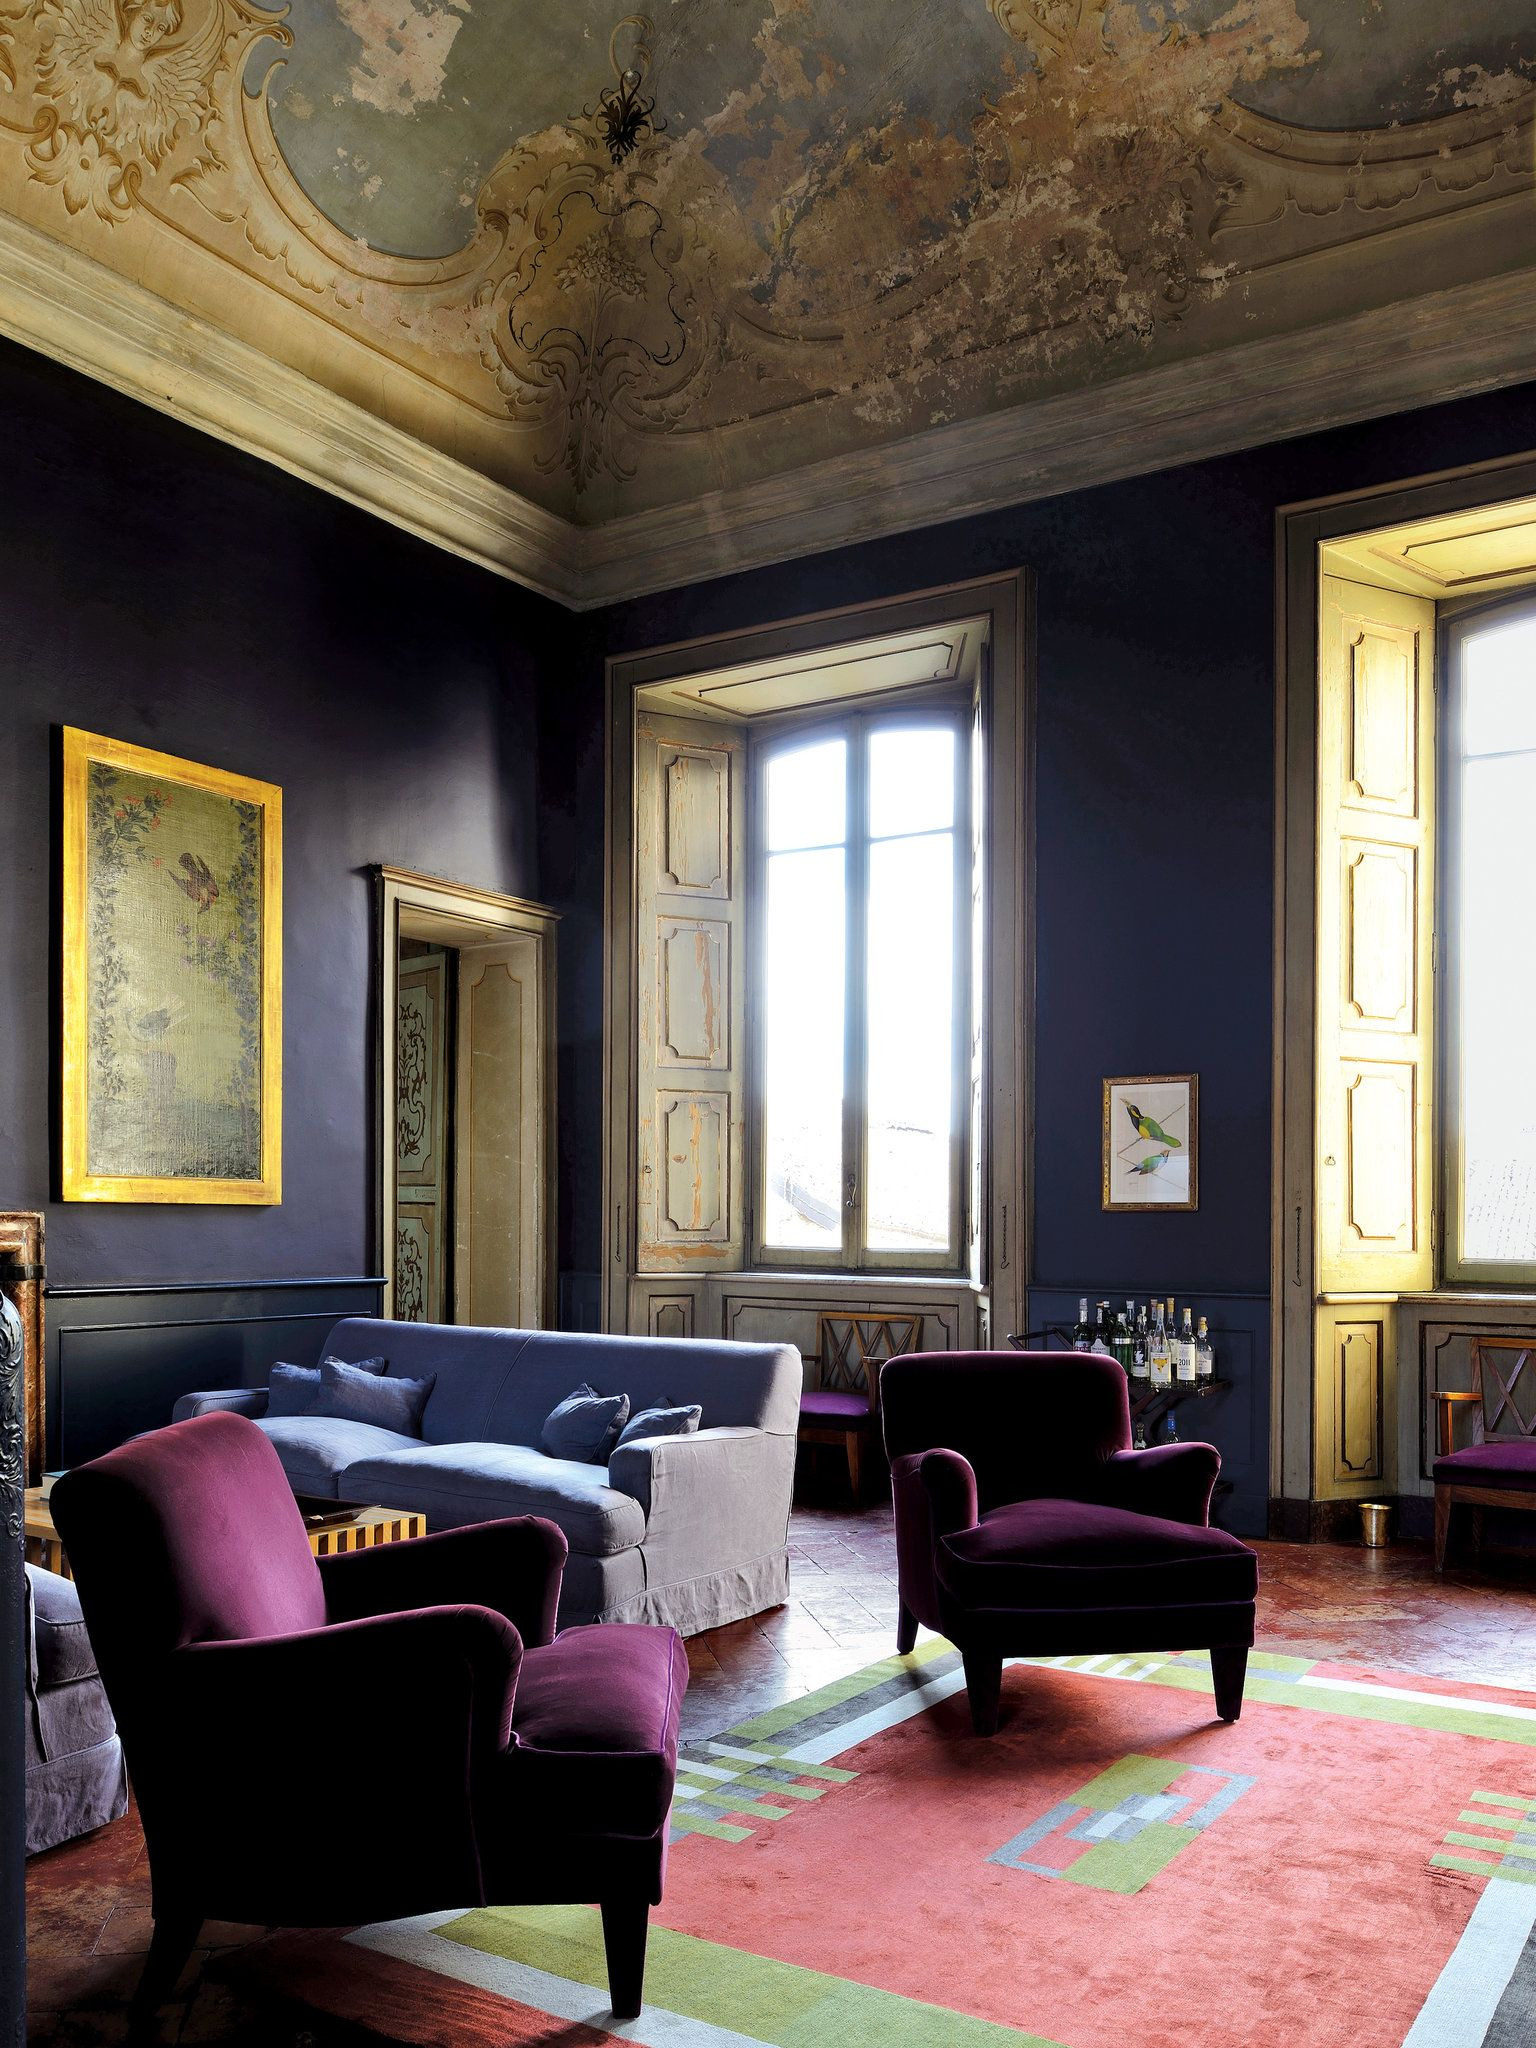 Pictures Of Beautiful Houses Inside and Outside New Inside Luca Guadagnino S Home